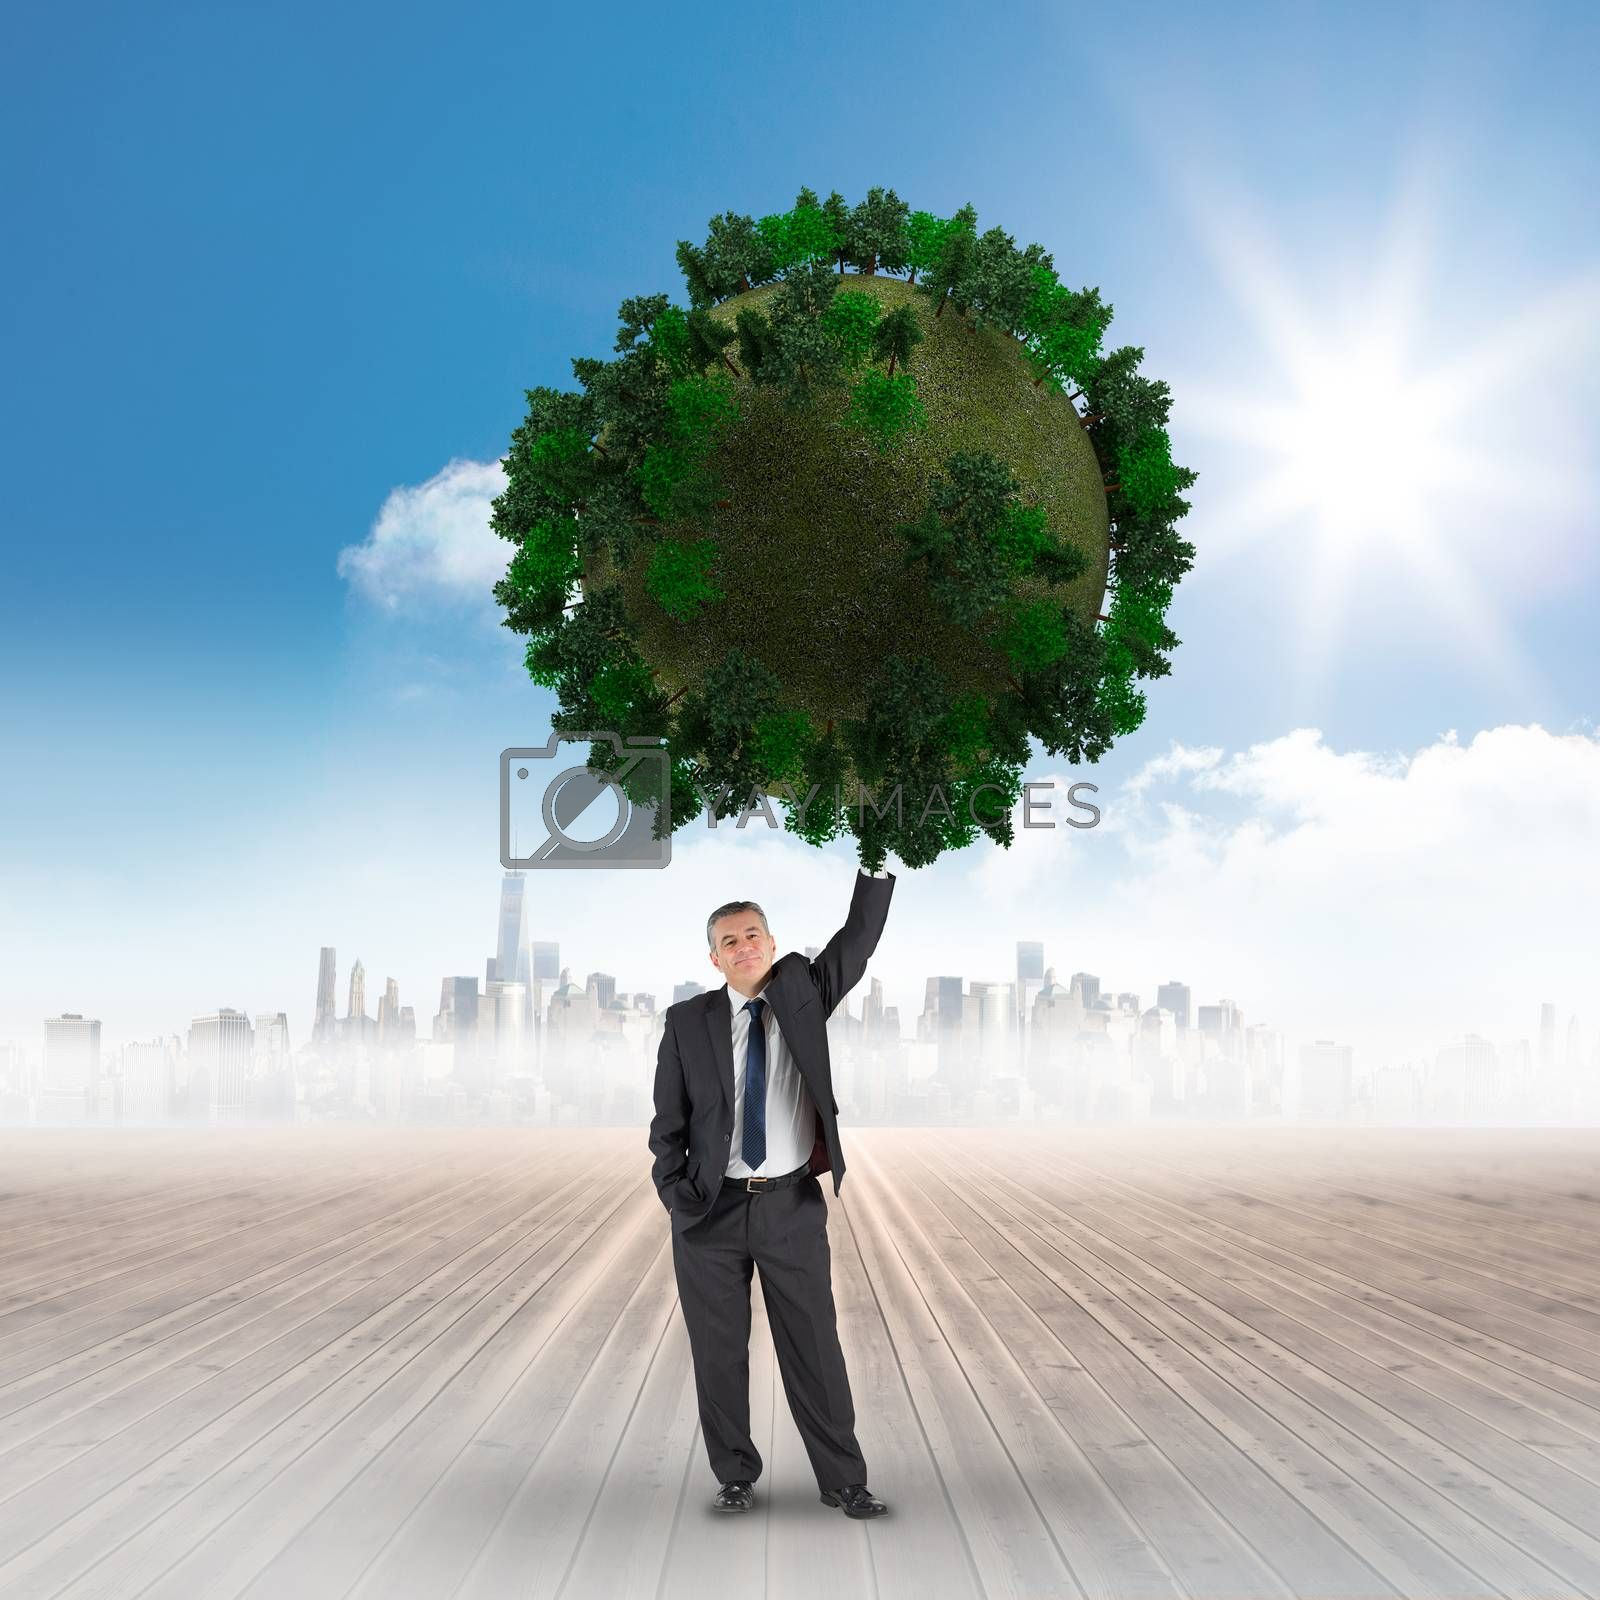 Composite image of businessman holding green sphere against cityscape on the horizon